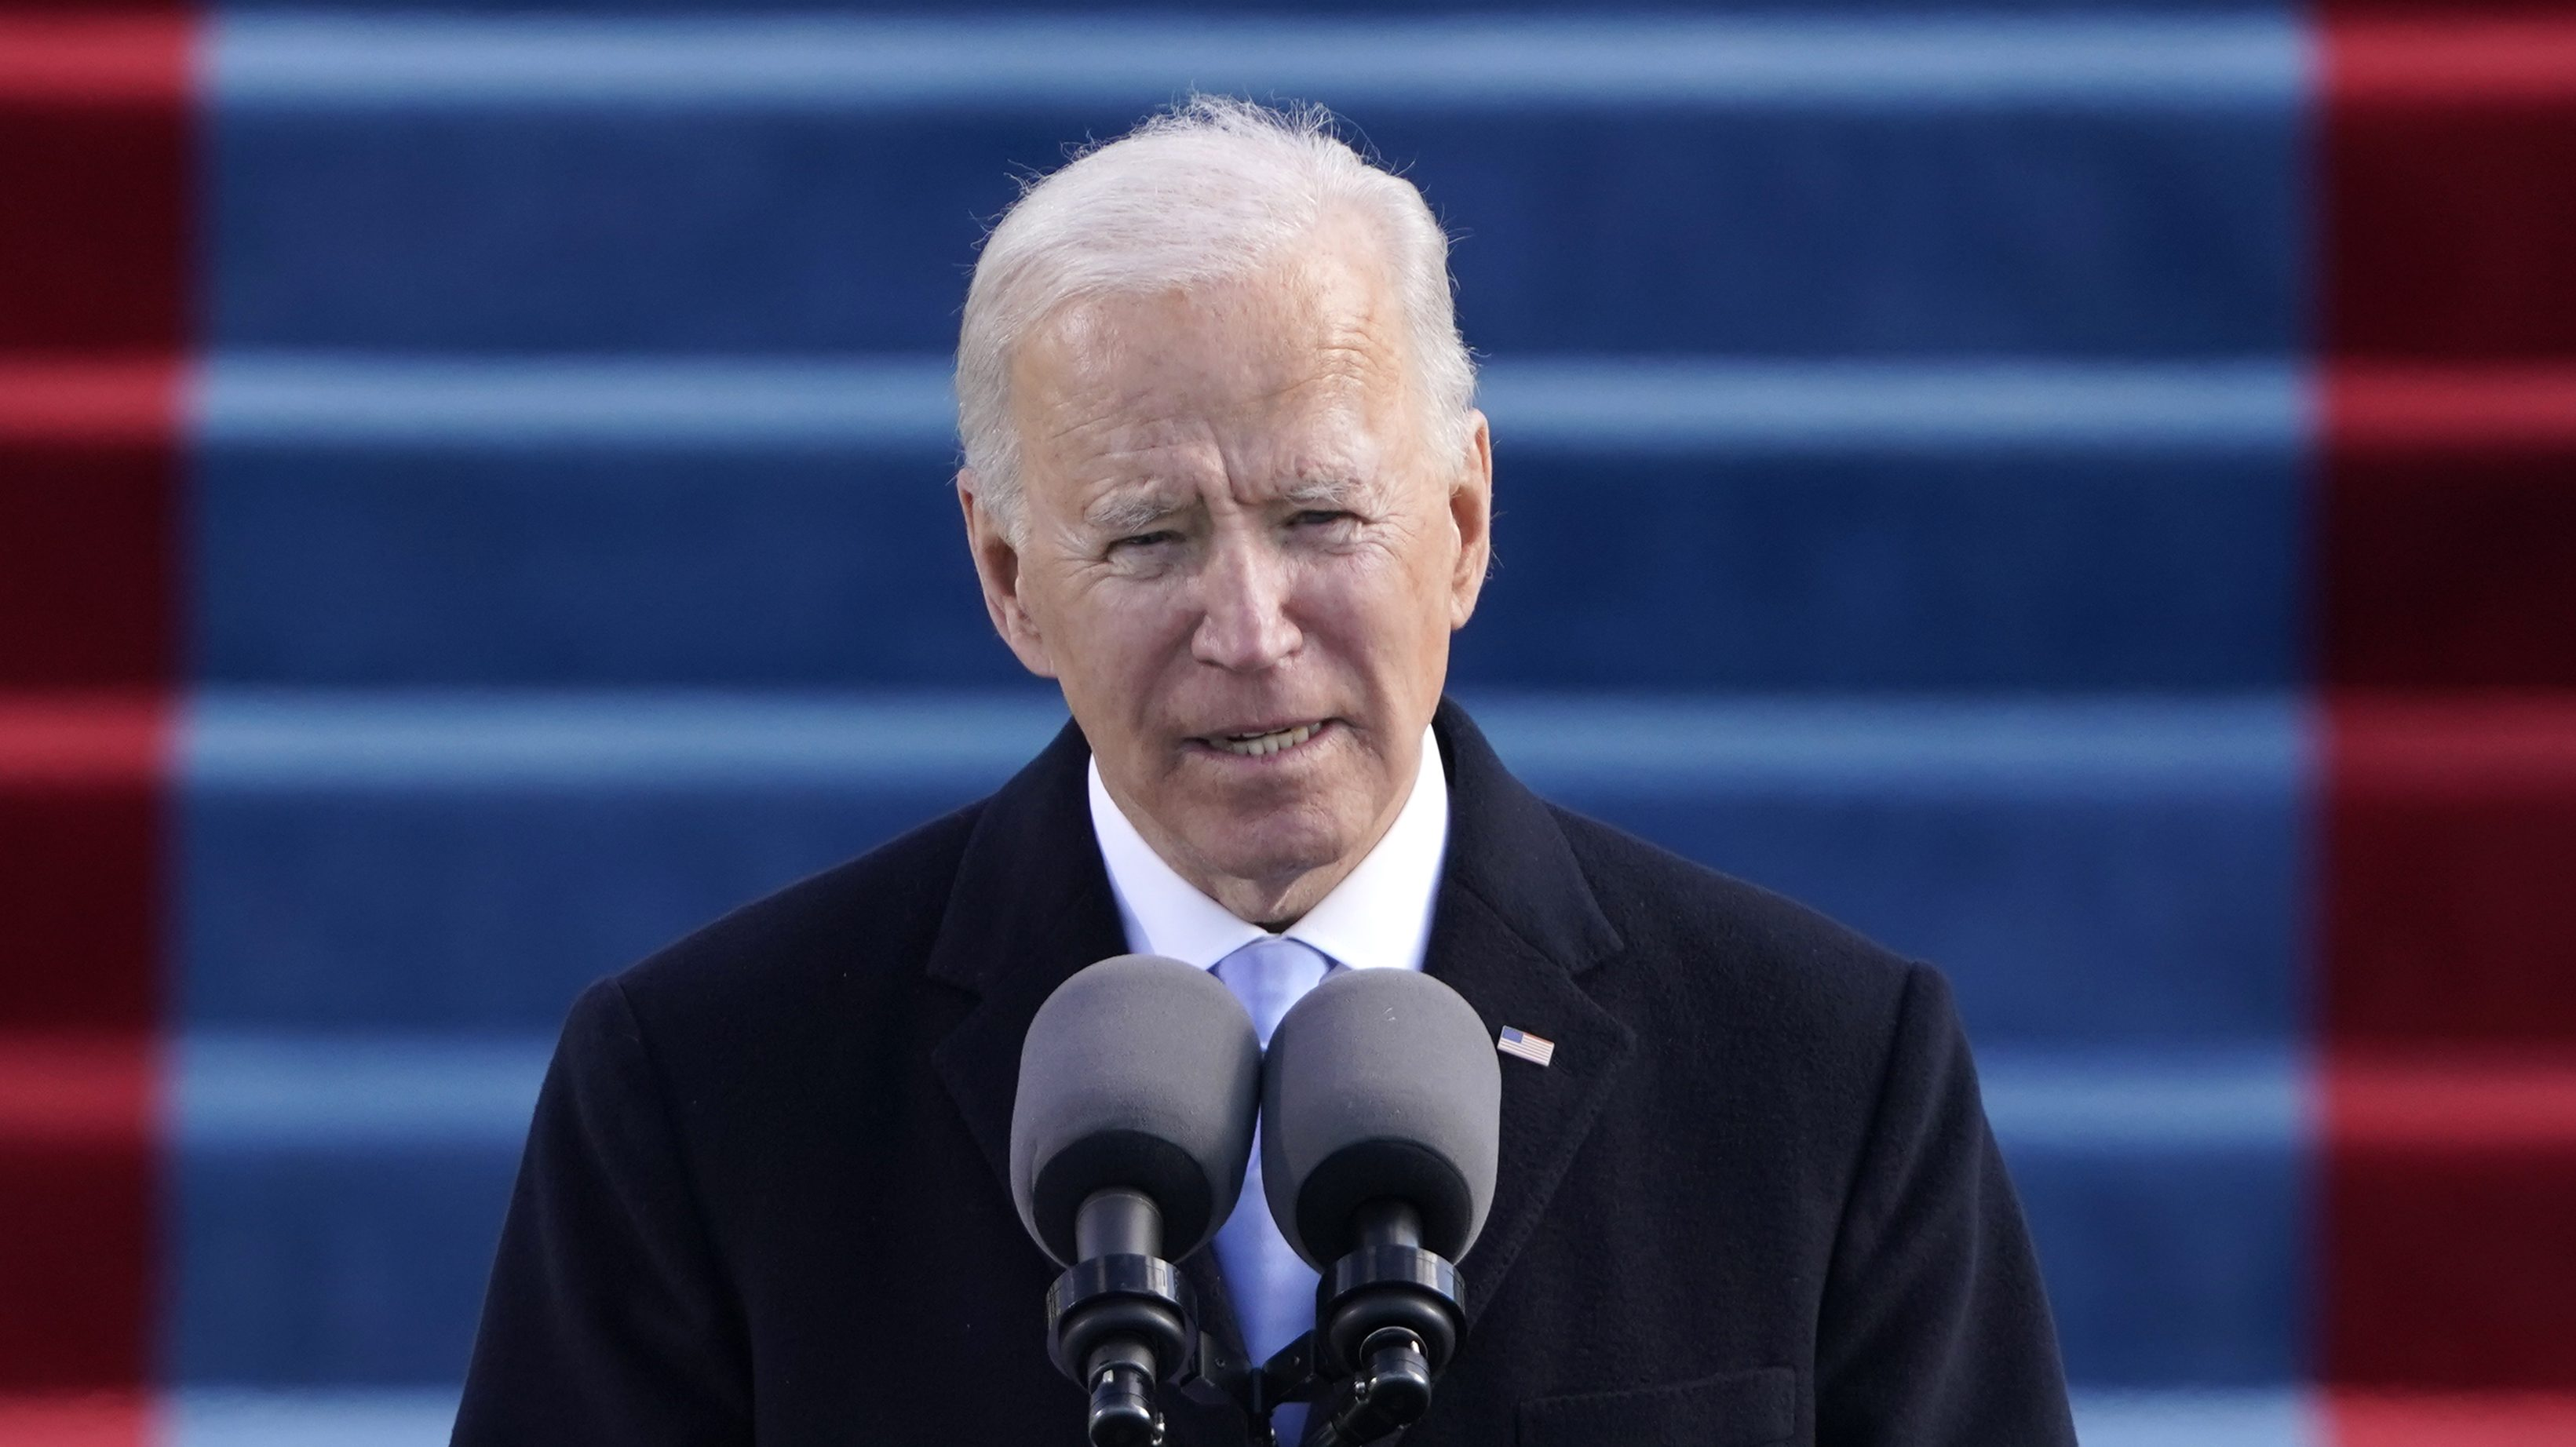 President Joe Biden speaks during the 59th Presidential Inauguration at the Capitol in Washington, Jan. 20, 2021.